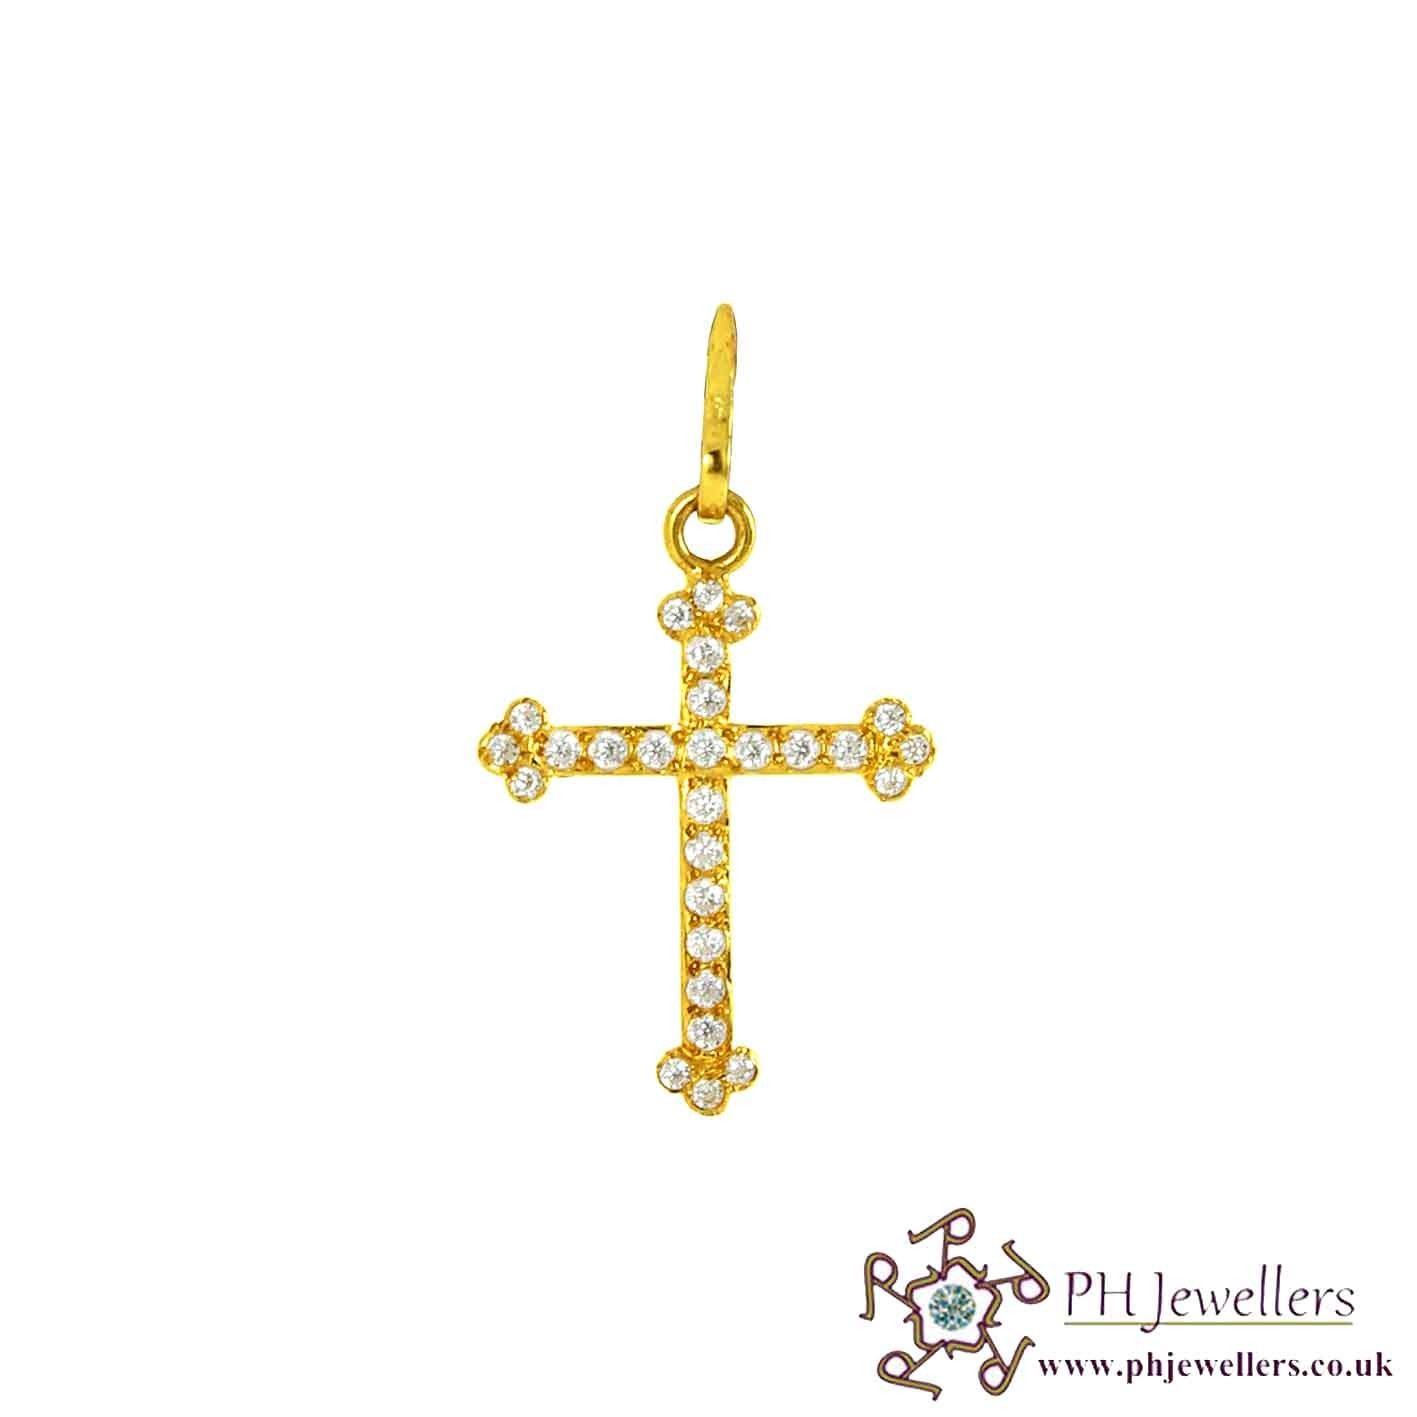 Online gold jewellery gold jewellery religious 22ct 916 hallmark online gold jewellery gold jewellery religious 22ct 916 hallmark yellow gold cross pendant cz rp42 22 carat gold jewellers aloadofball Gallery